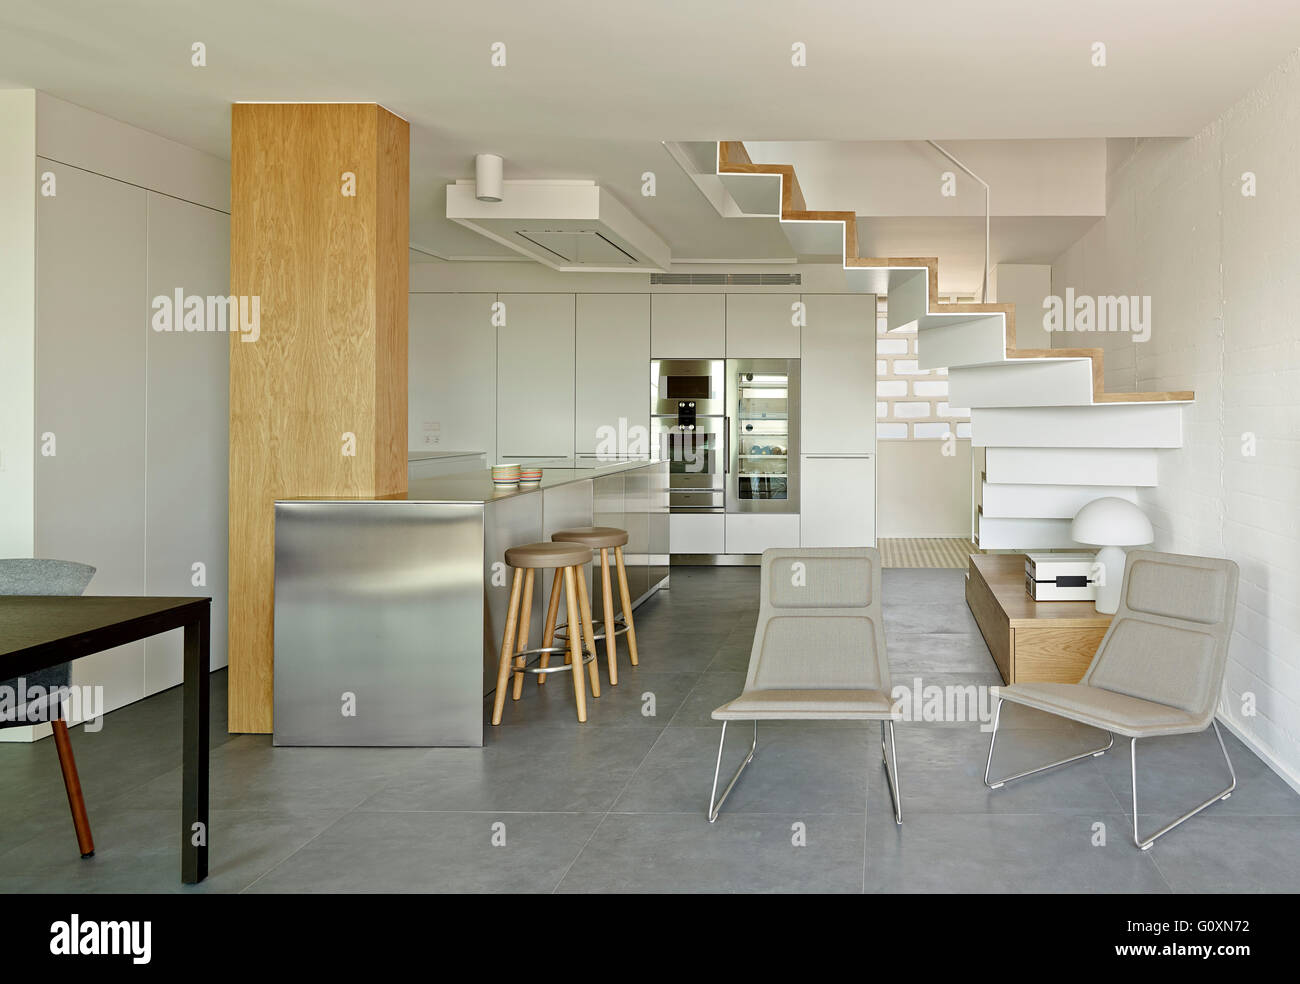 curved staircase stockfotos curved staircase bilder alamy. Black Bedroom Furniture Sets. Home Design Ideas